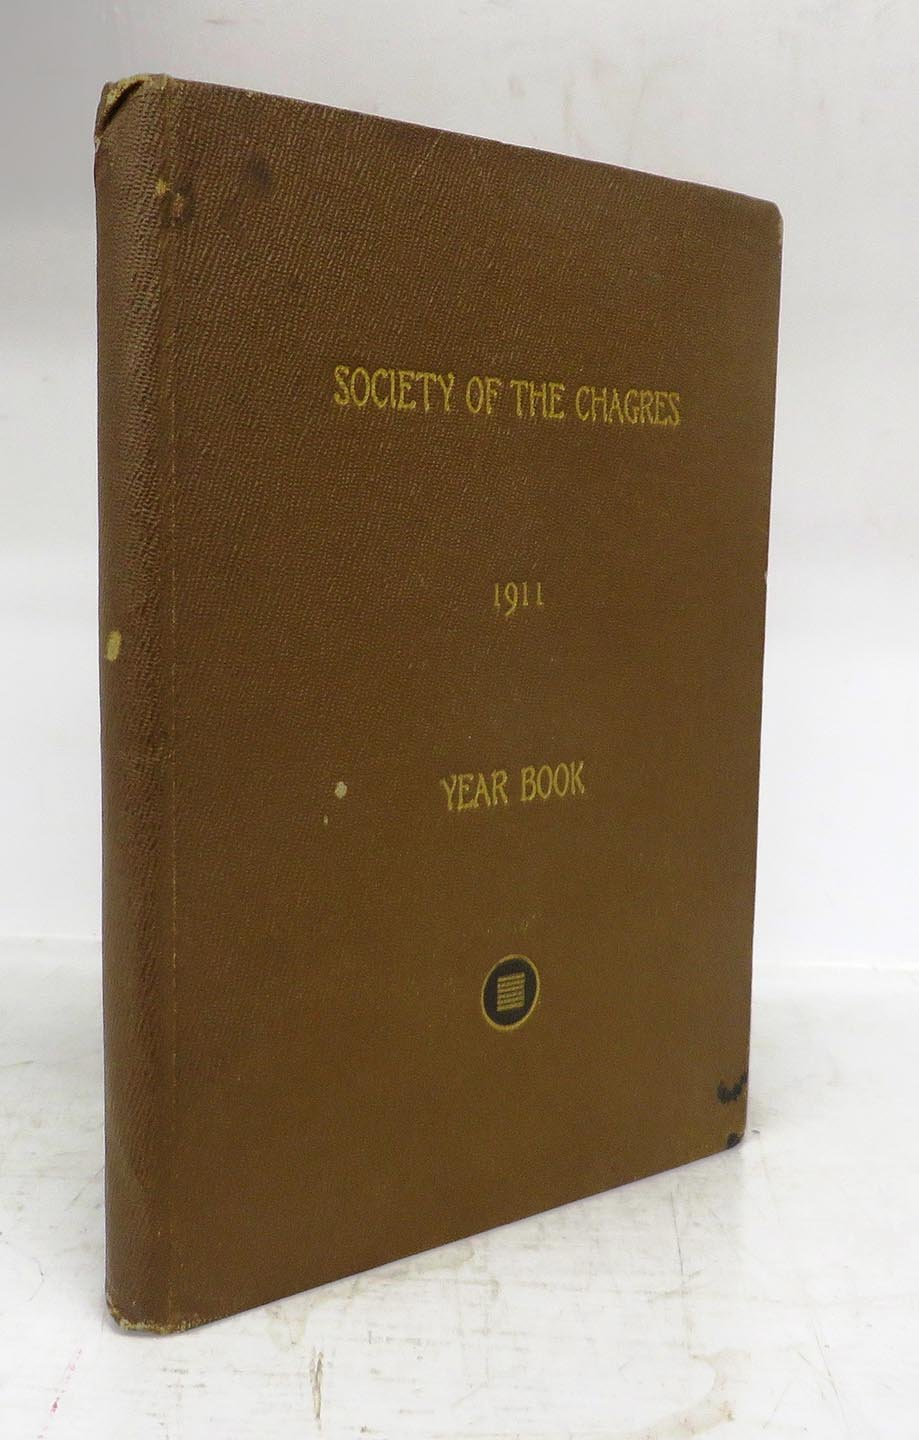 Society of the Chagres Year Book 1911